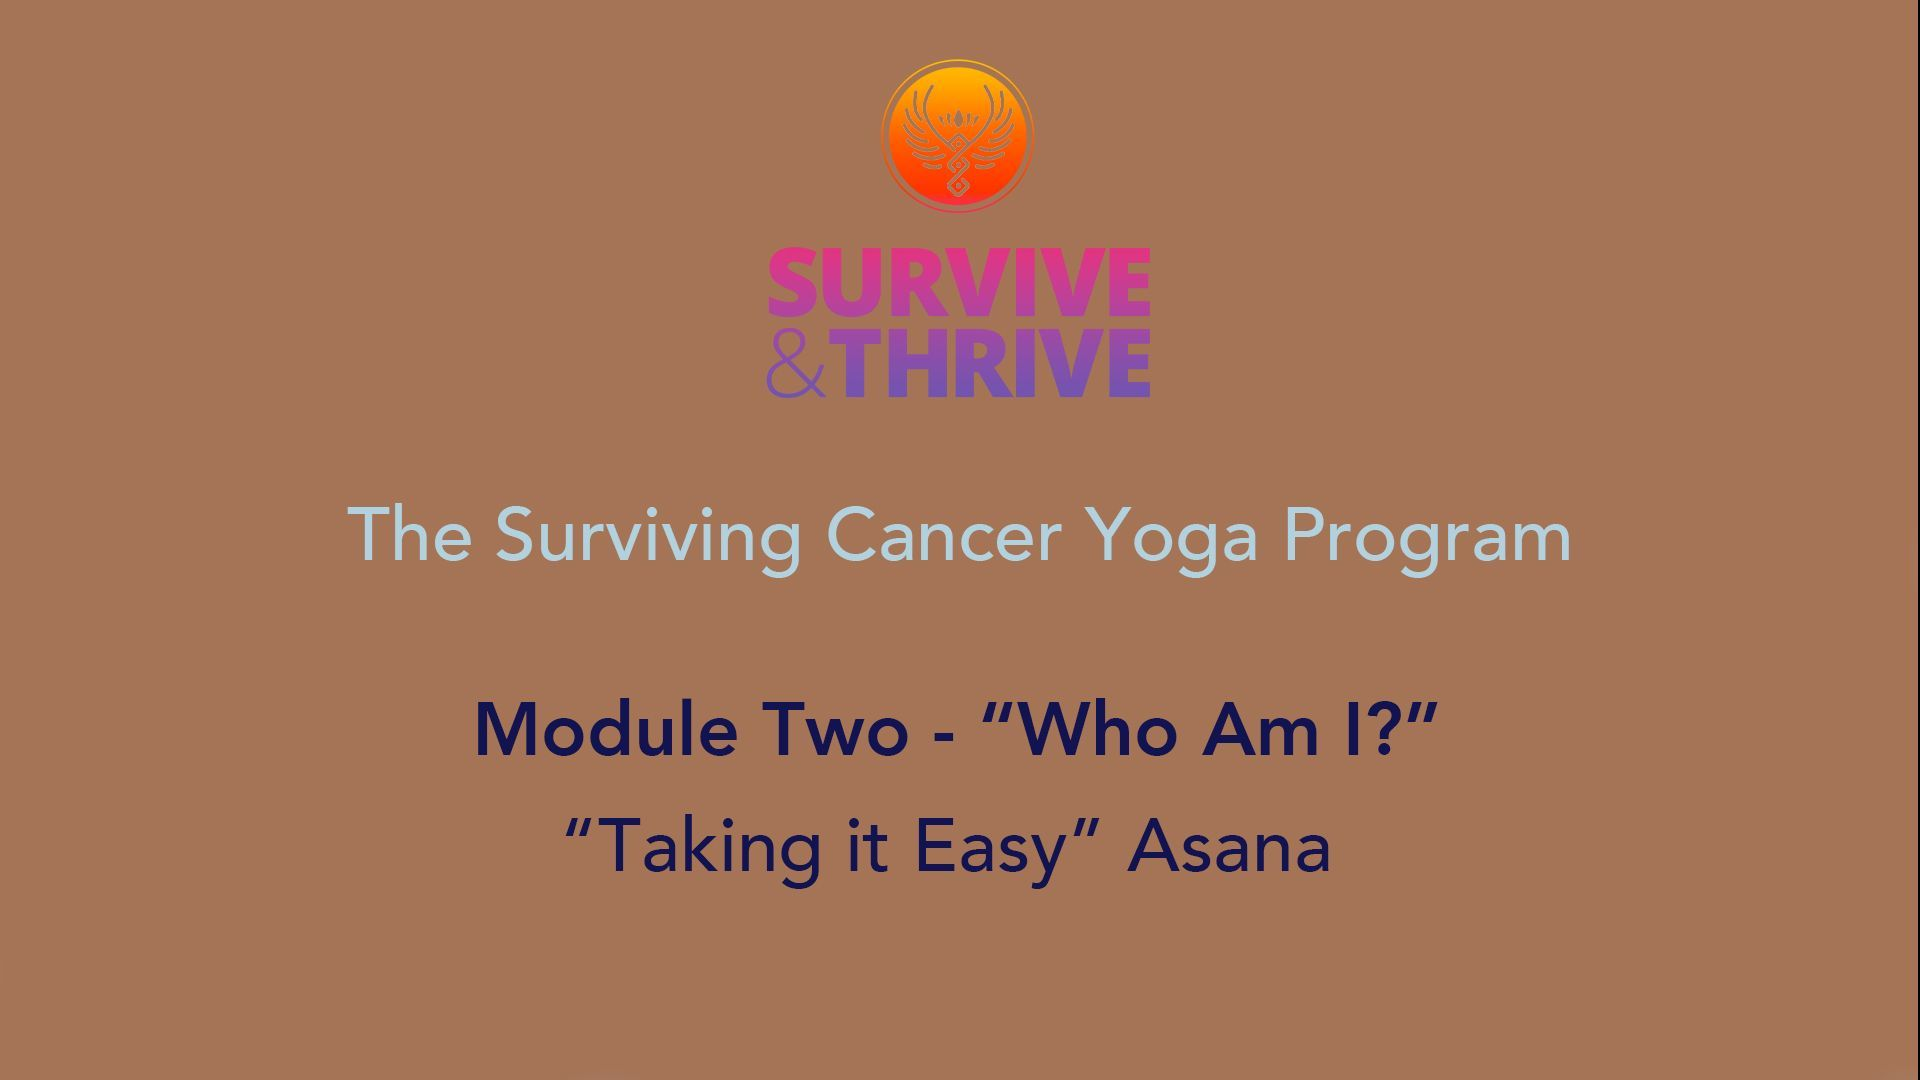 SURVIVE AND THRIVE | MODULE 2 - WHO AM I? | TAKING IT EASY ASANA